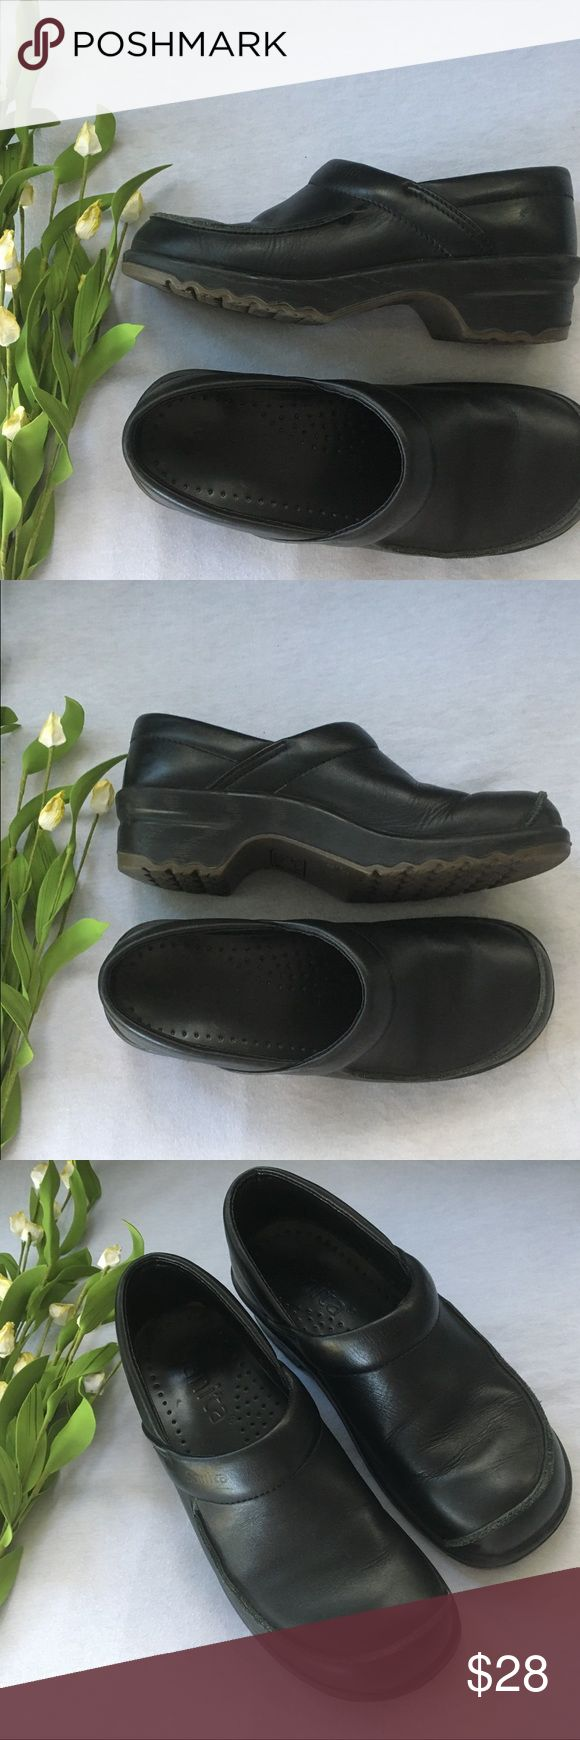 Sanita Black Mules Clogs size 37 These are in ver good condition. Shows some wear on leather trim around the front (see pics) but otherwise these are great shoes! Size 37/ 6.5 US (size chart conversion from Sanita site) Sanita Shoes Mules & Clogs